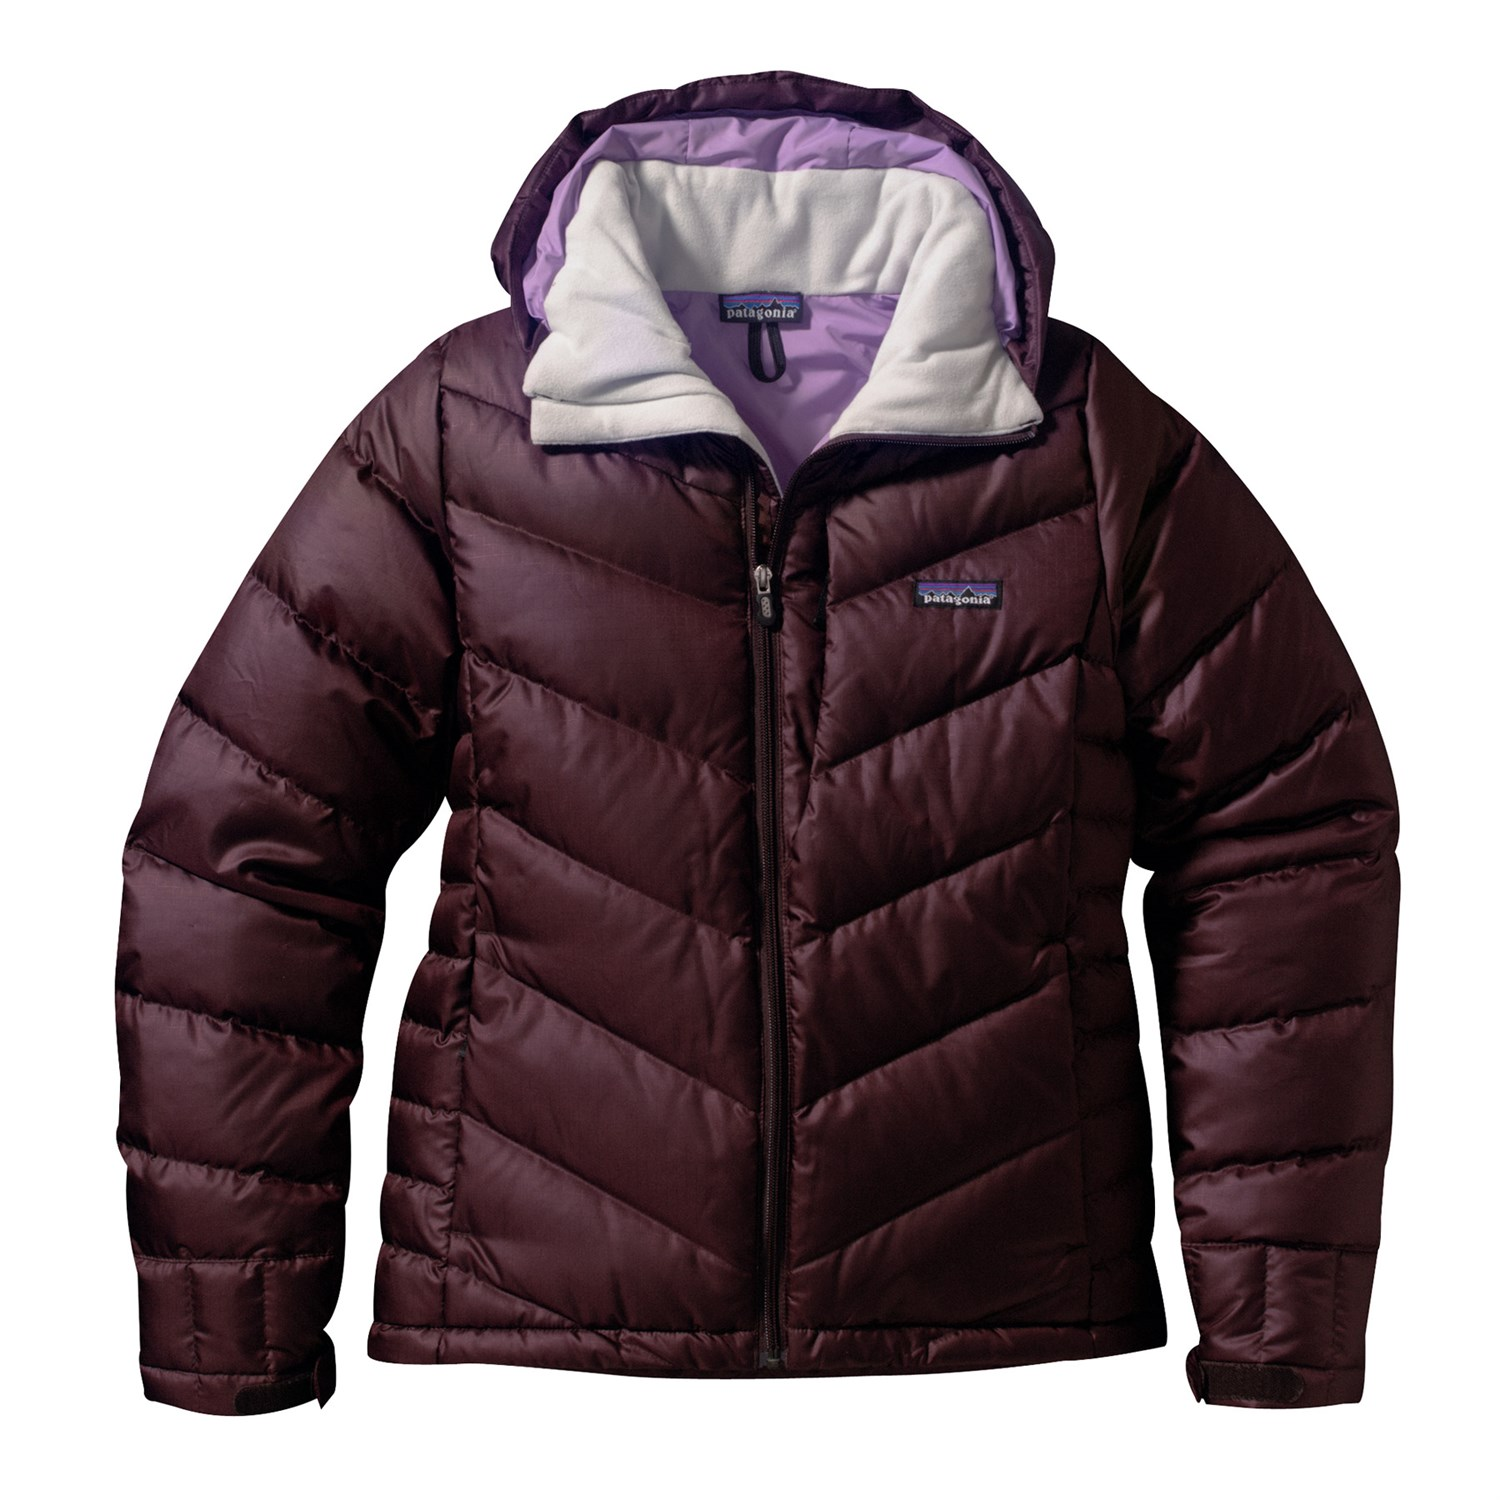 8f7ad2a87 Patagonia Pipe Down Jacket - Women's | evo